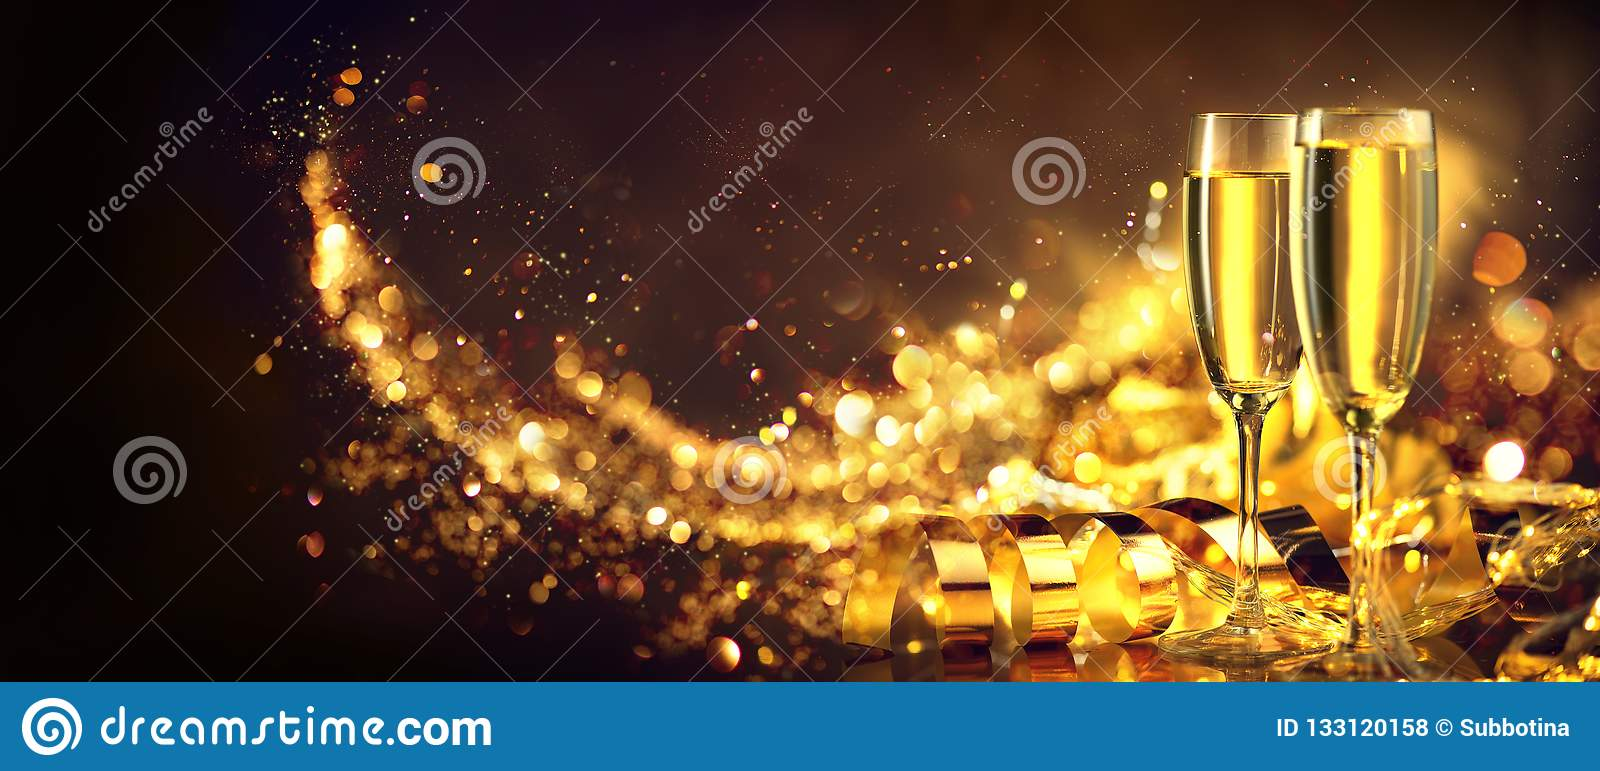 Christmas scene. Holiday champagne over golden glow background. Christmas and New Year celebration. Two flutes with sparkling wine